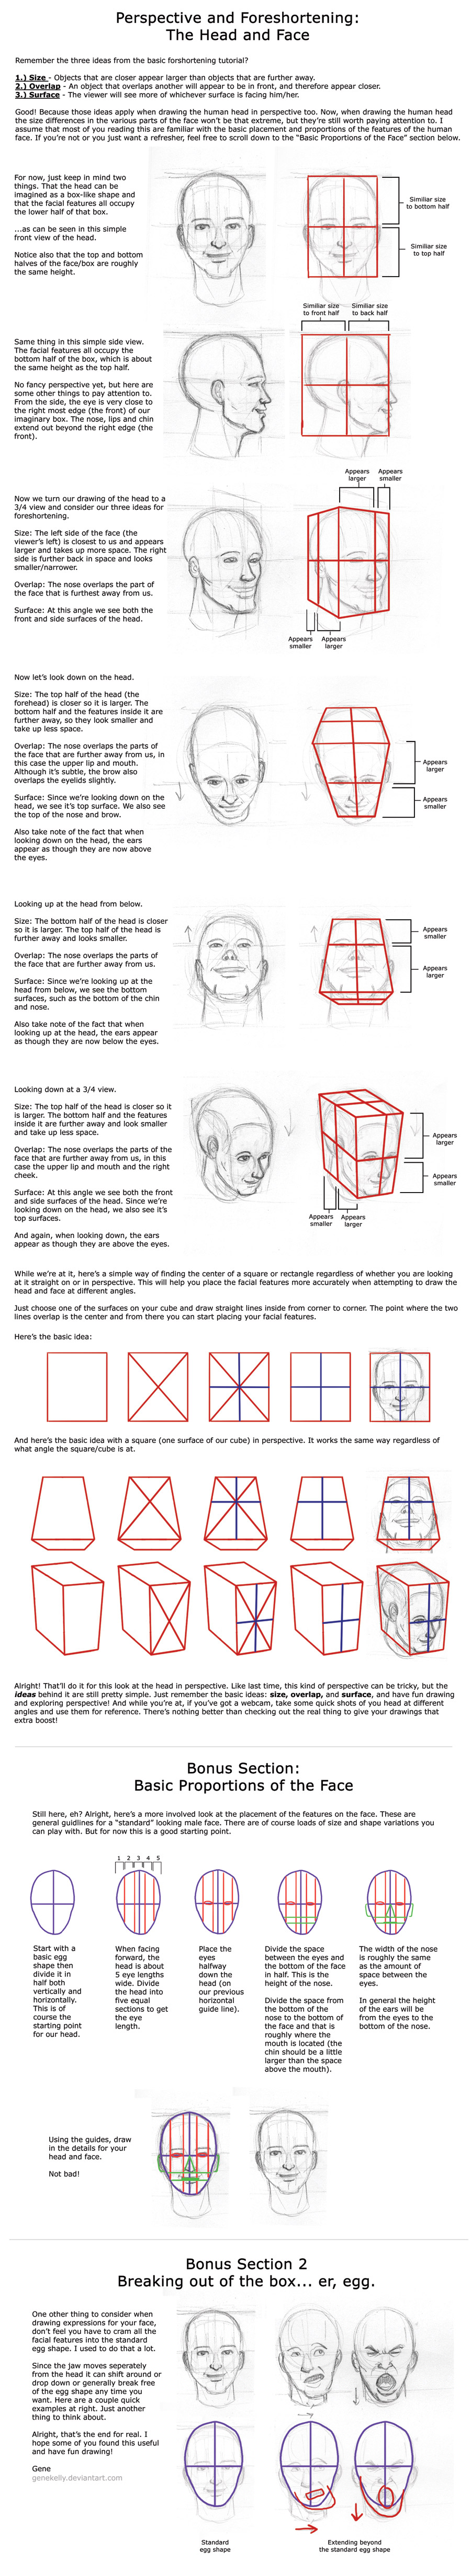 Tues 4: Head in Perspective